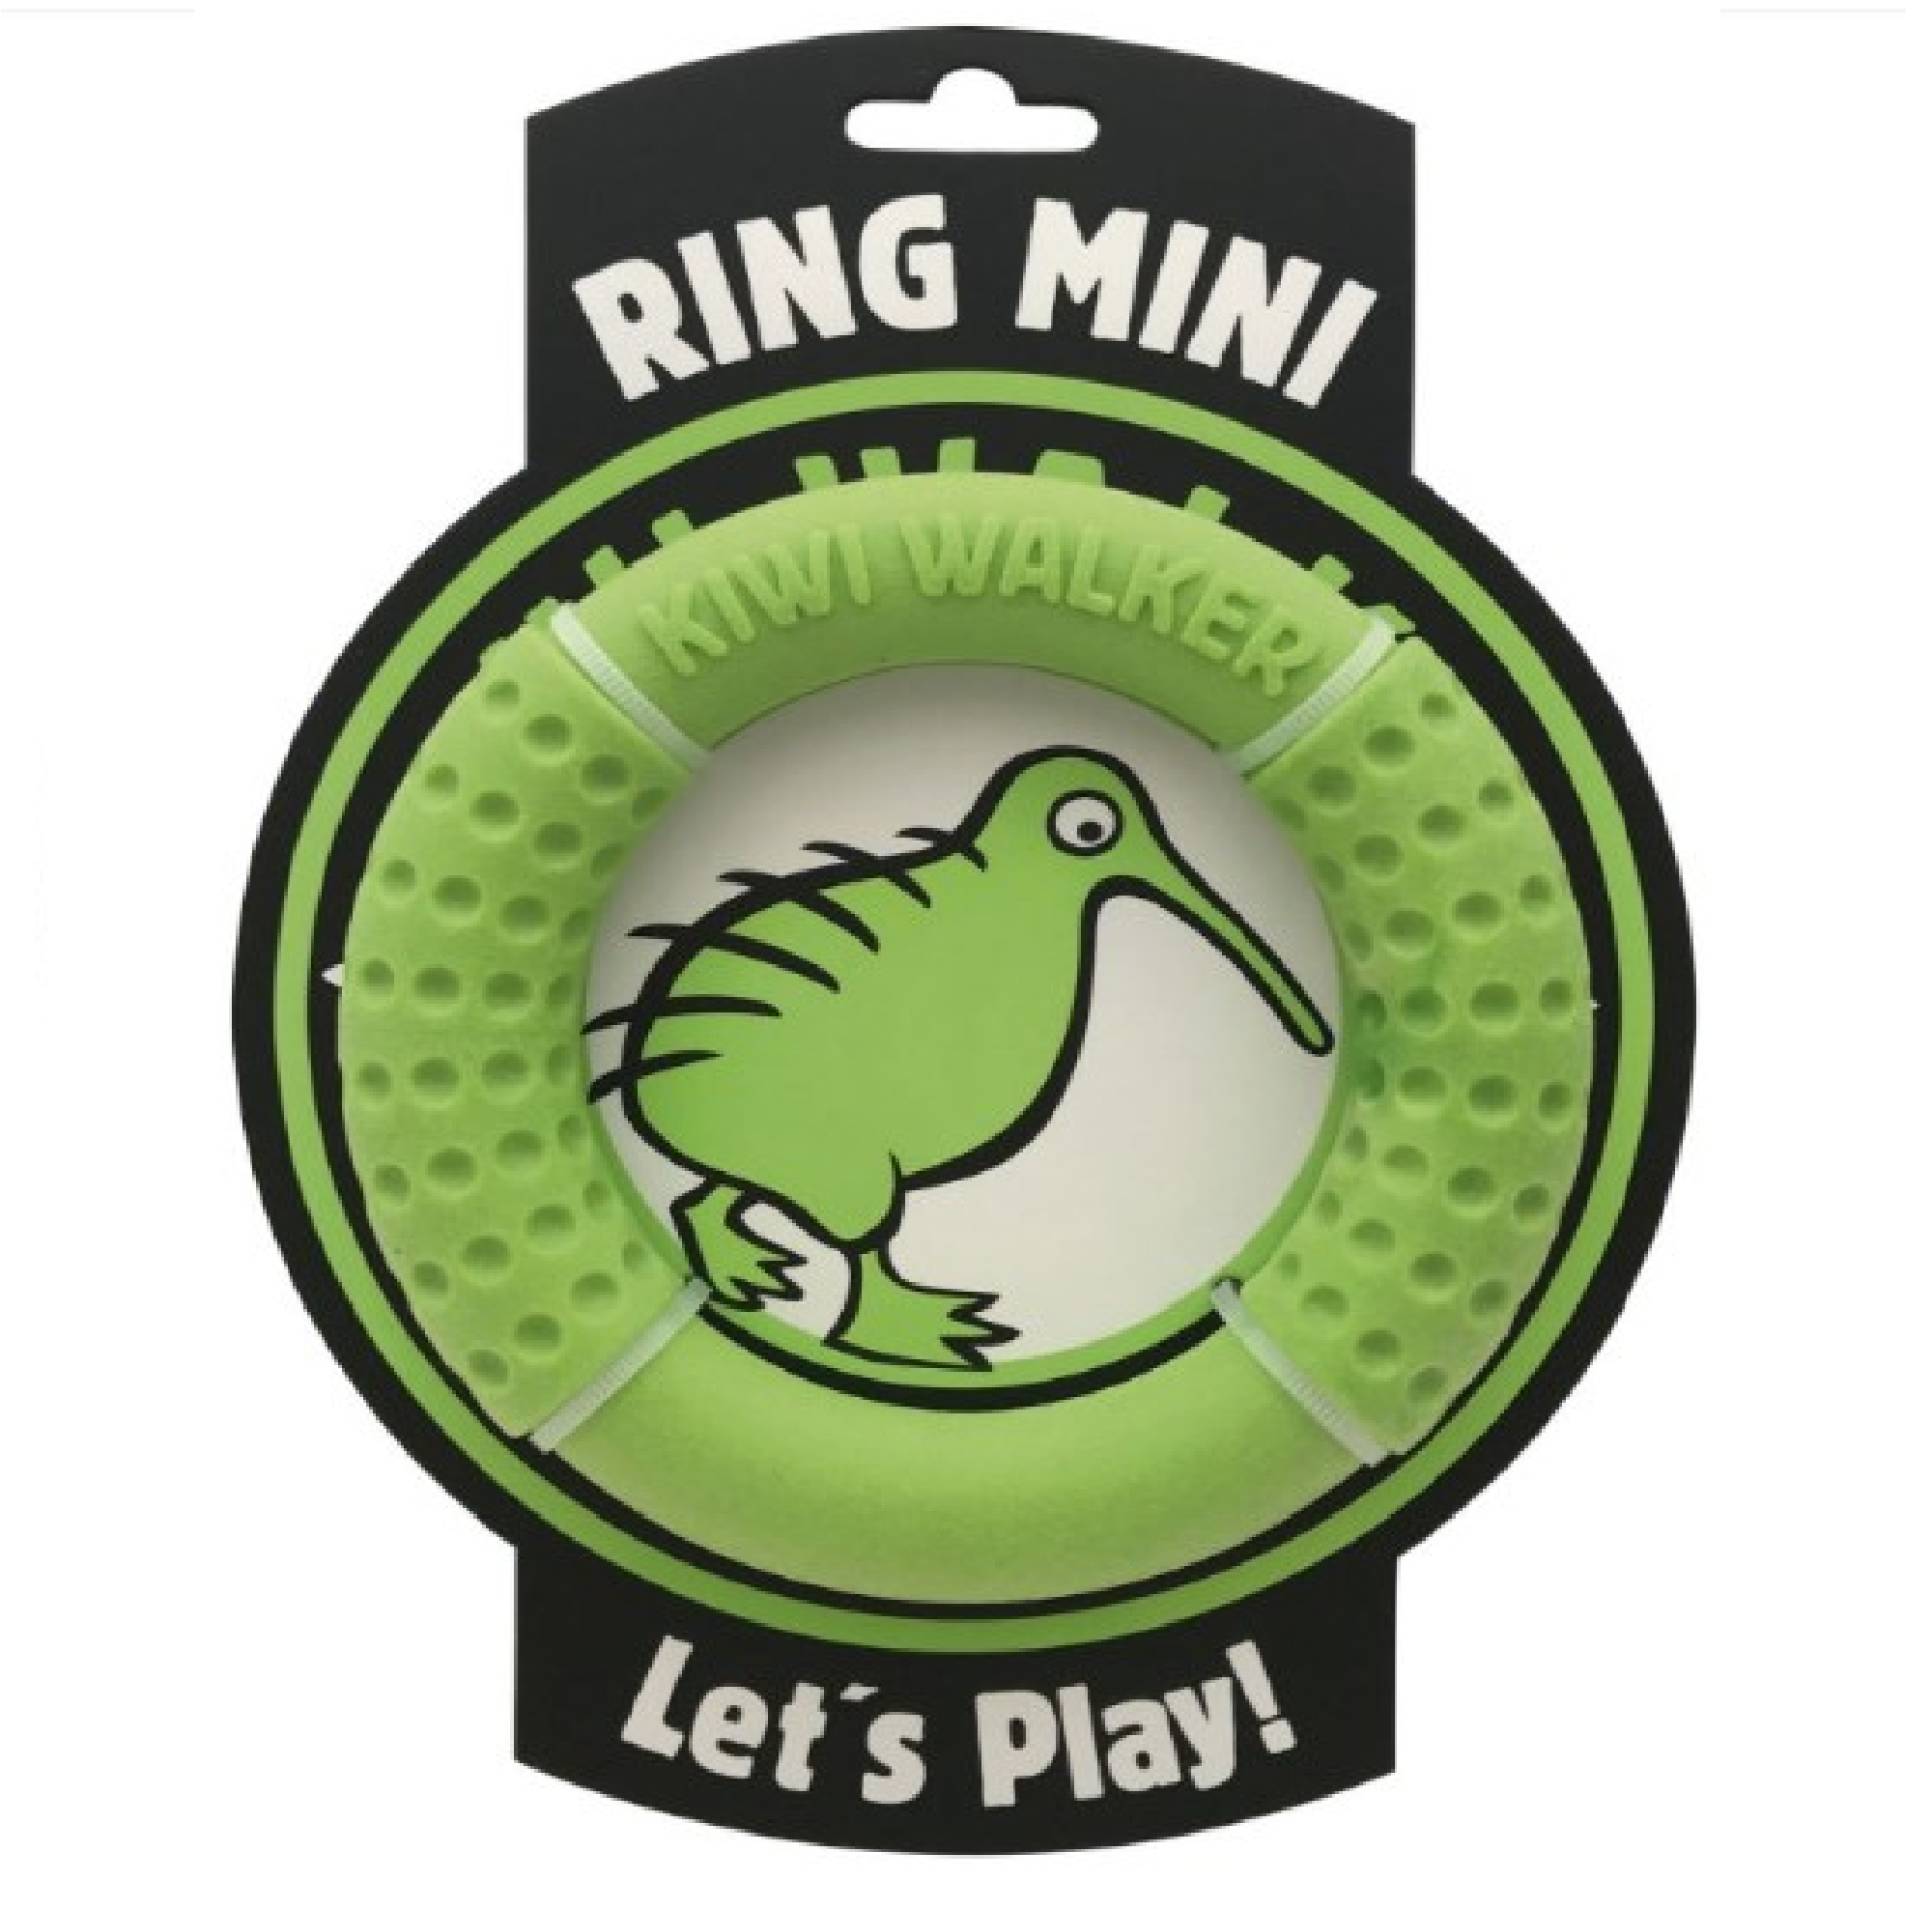 Kiwi Walker Ring Mini